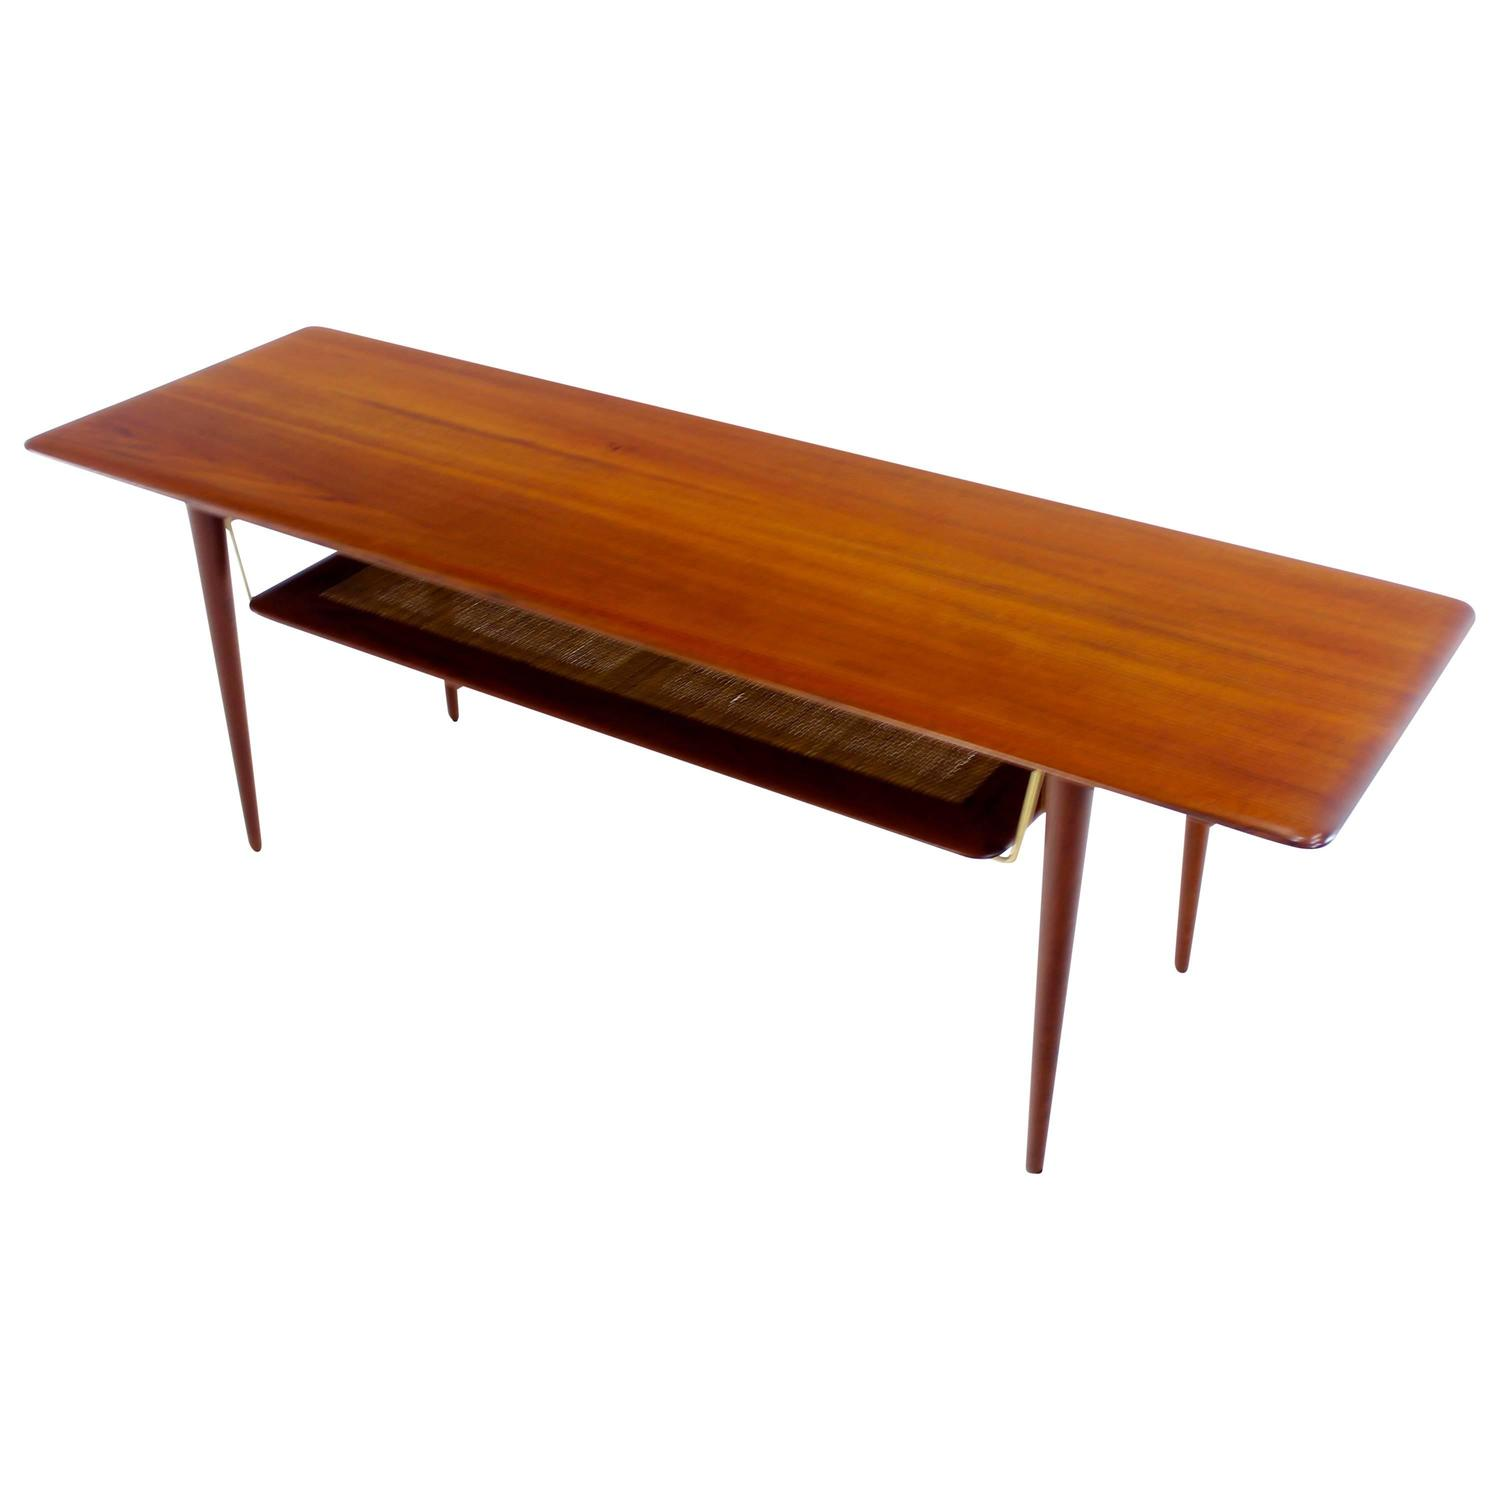 Danish Modern Solid Teak Coffee Table Designed by Peter Hvidt